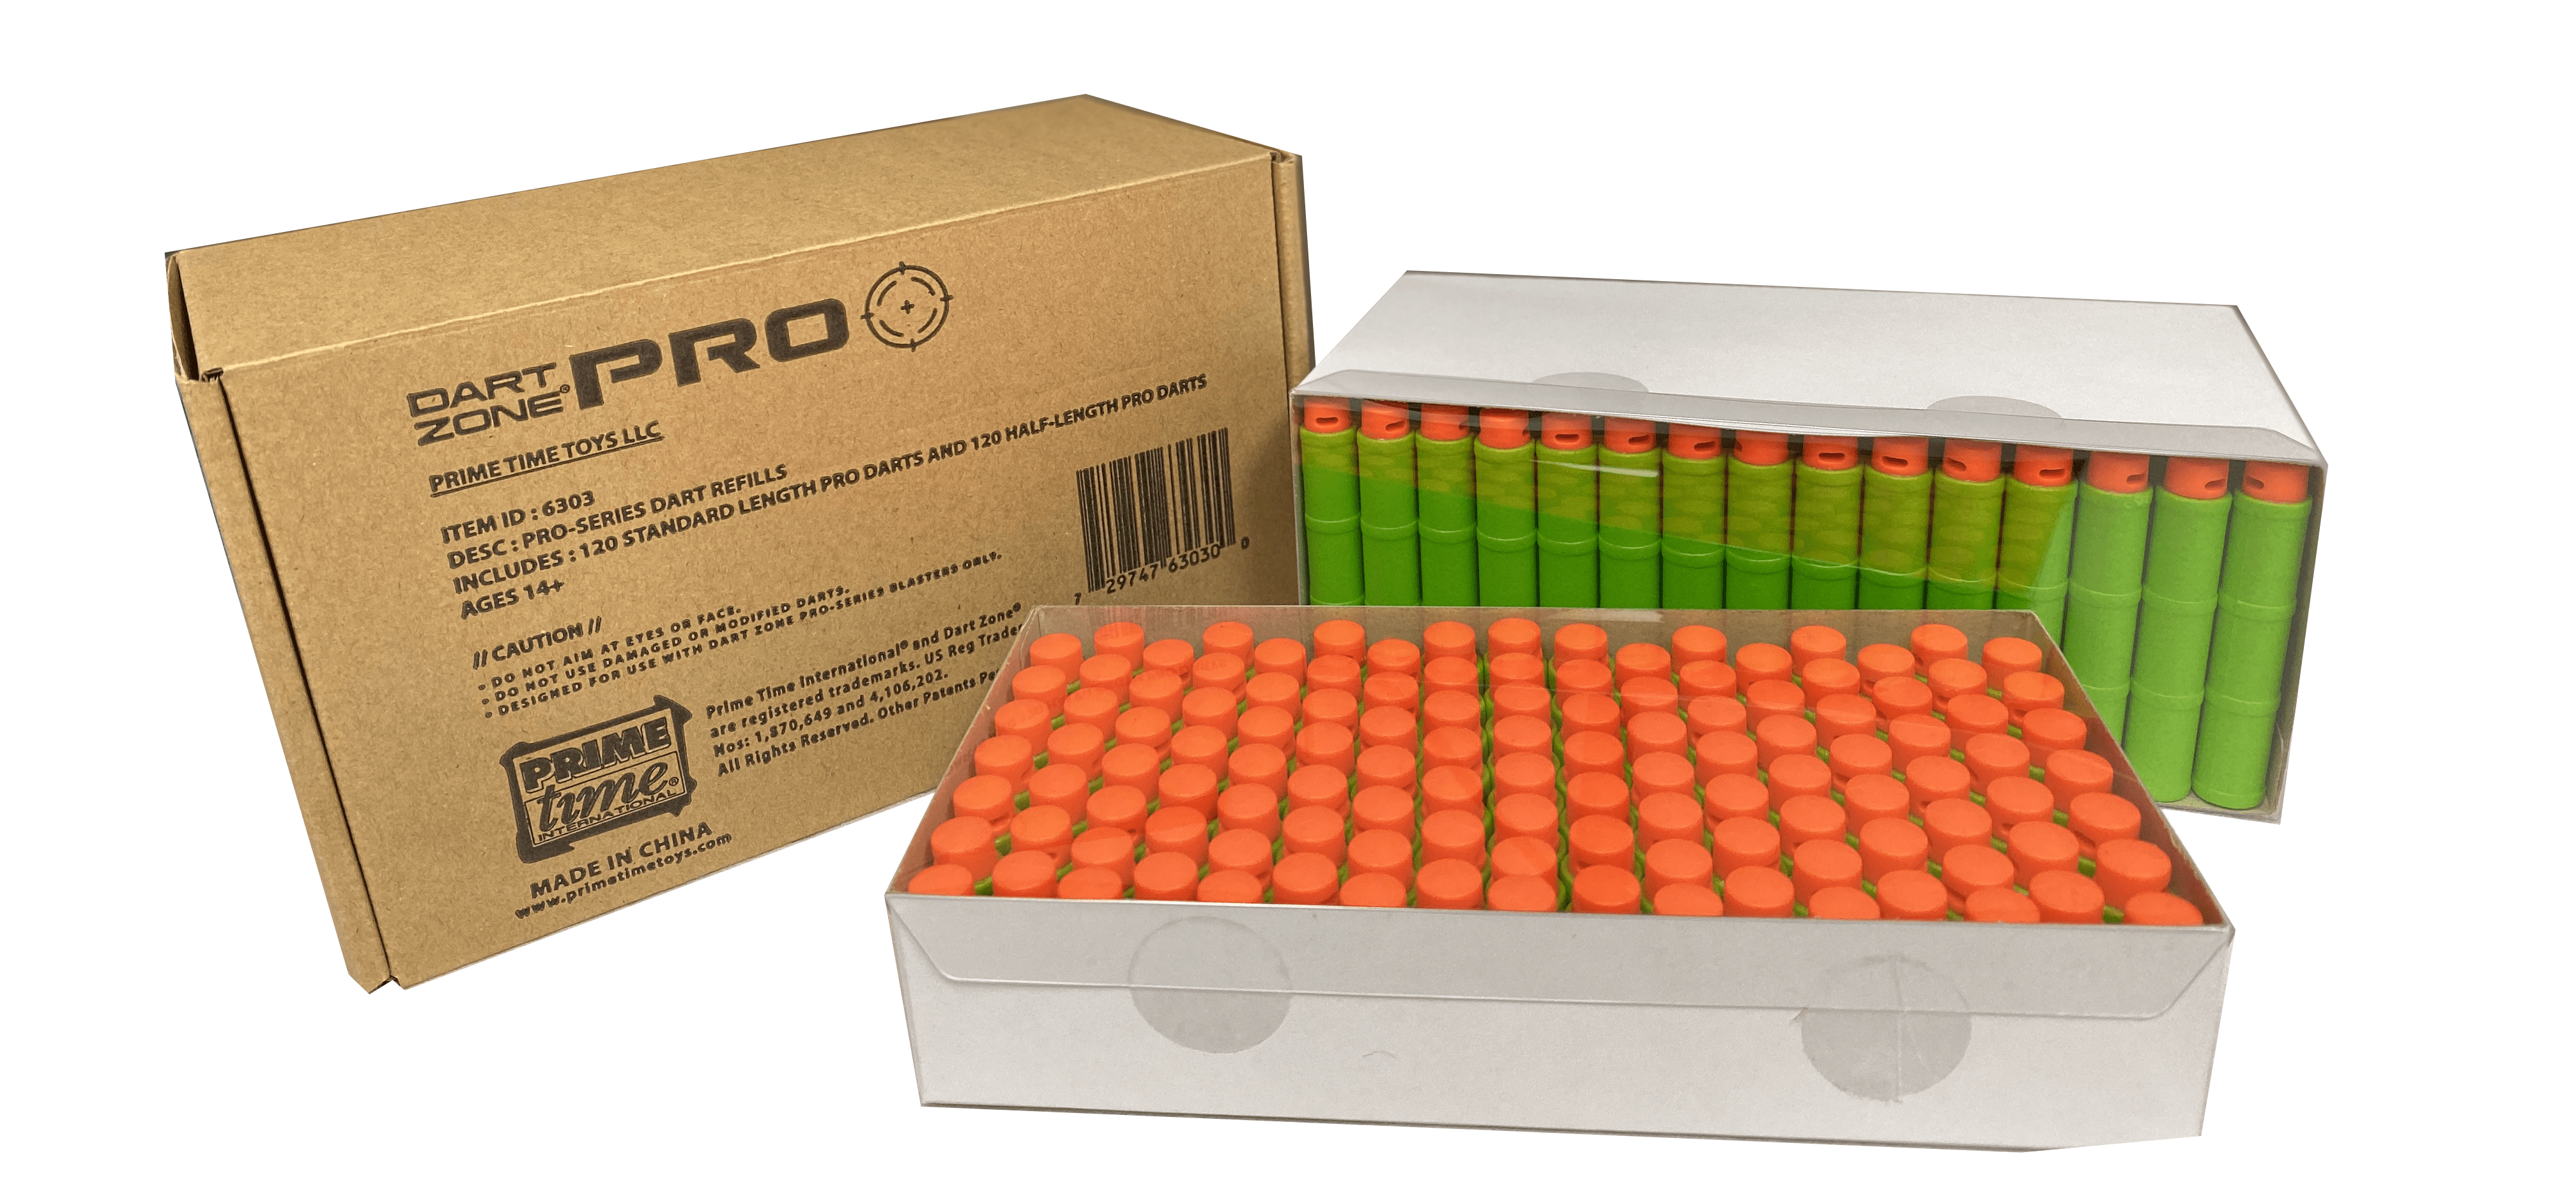 240 Toy Foam Pro Darts Ammo Refill Pack for High Power Dart Blasters